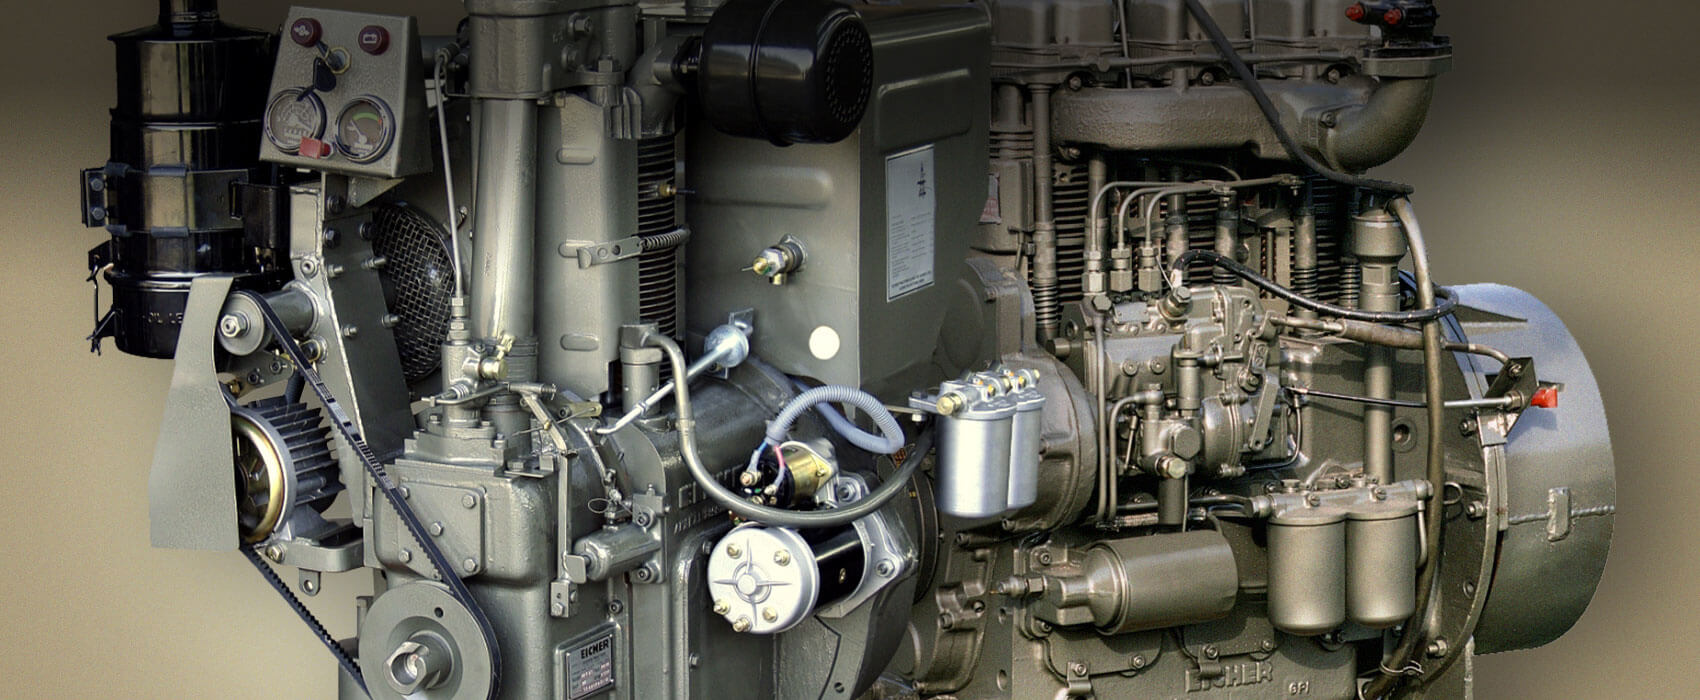 Eicher engines